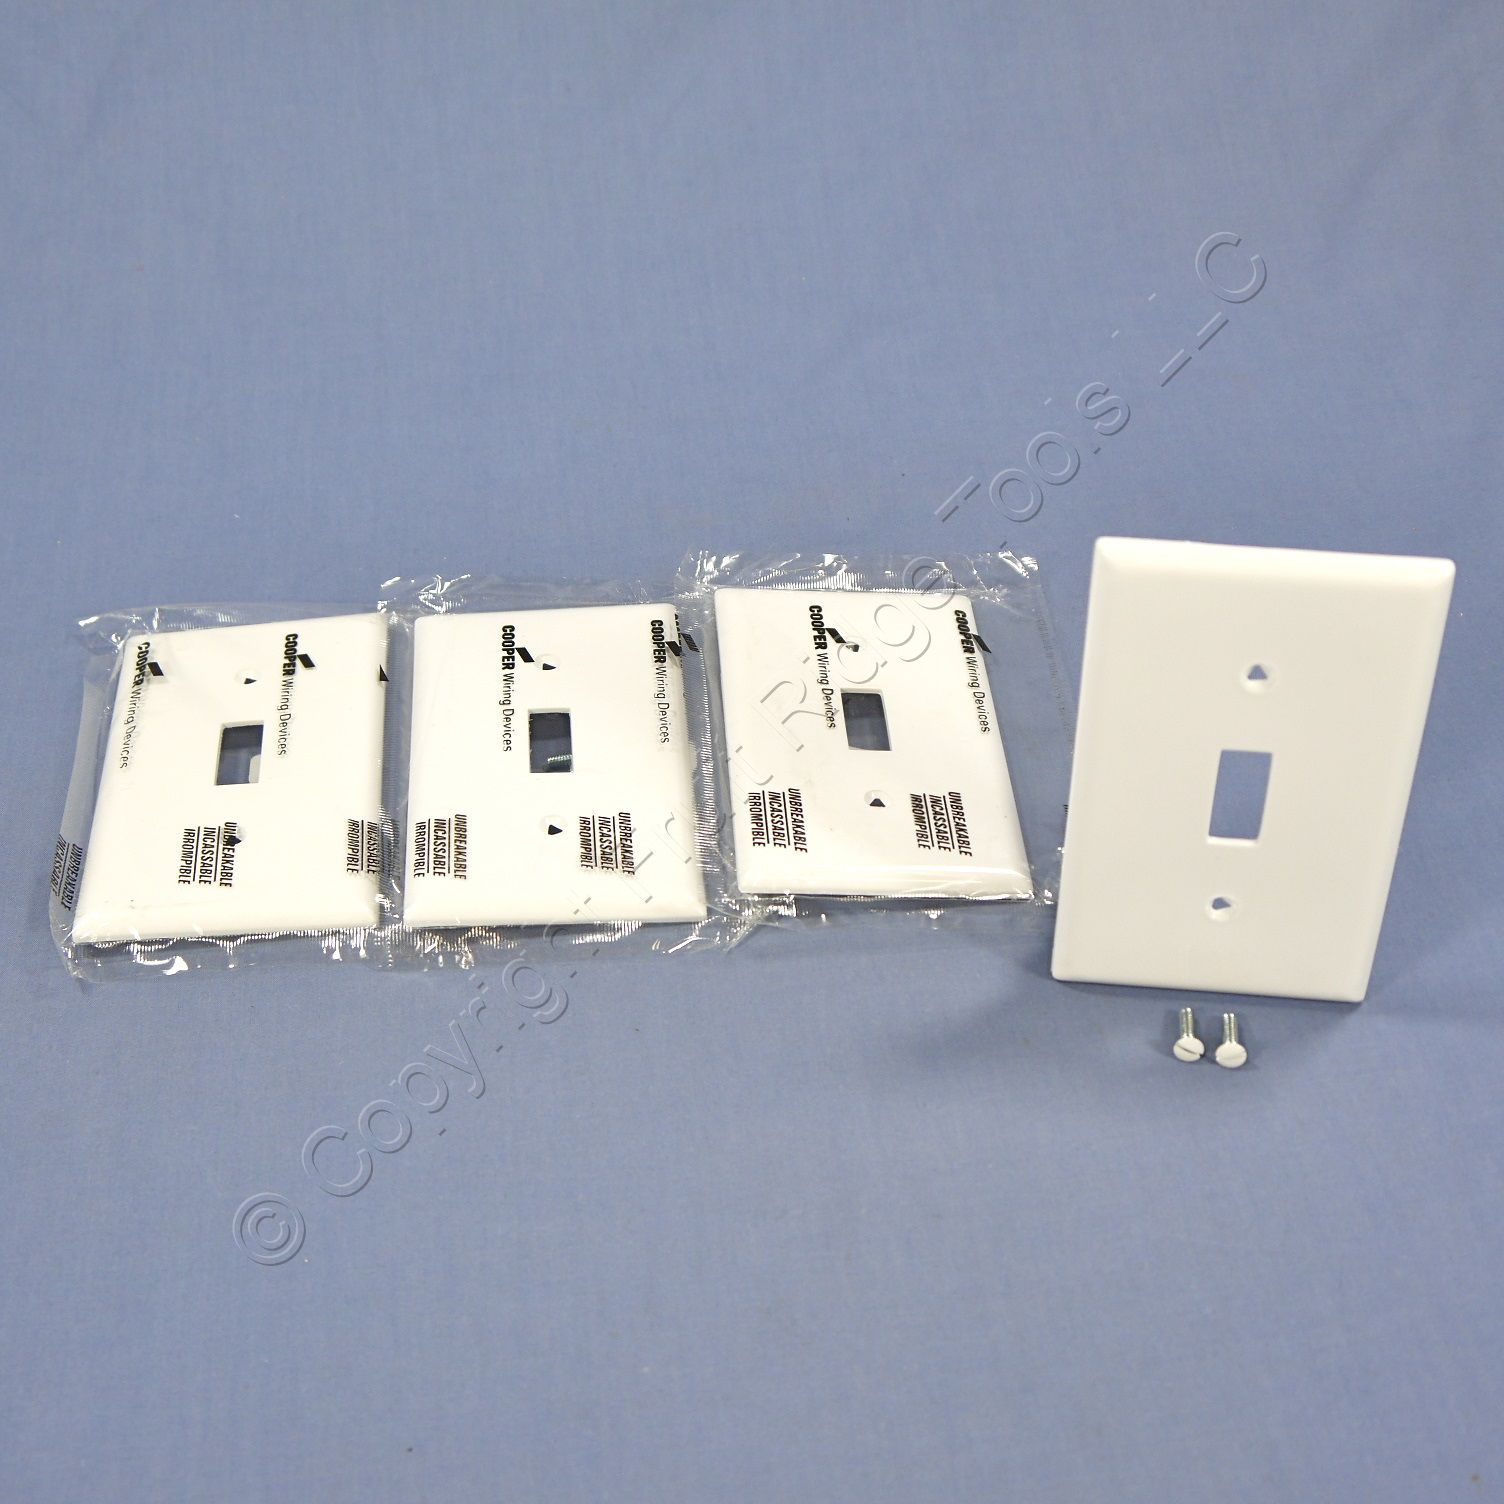 Shop 4 Cooper White Standard 1 Gang Unbreakable Toggle Switch Wiring Wall Plates Cover Plate Switchplates 5134w Fruit Ridge Tools